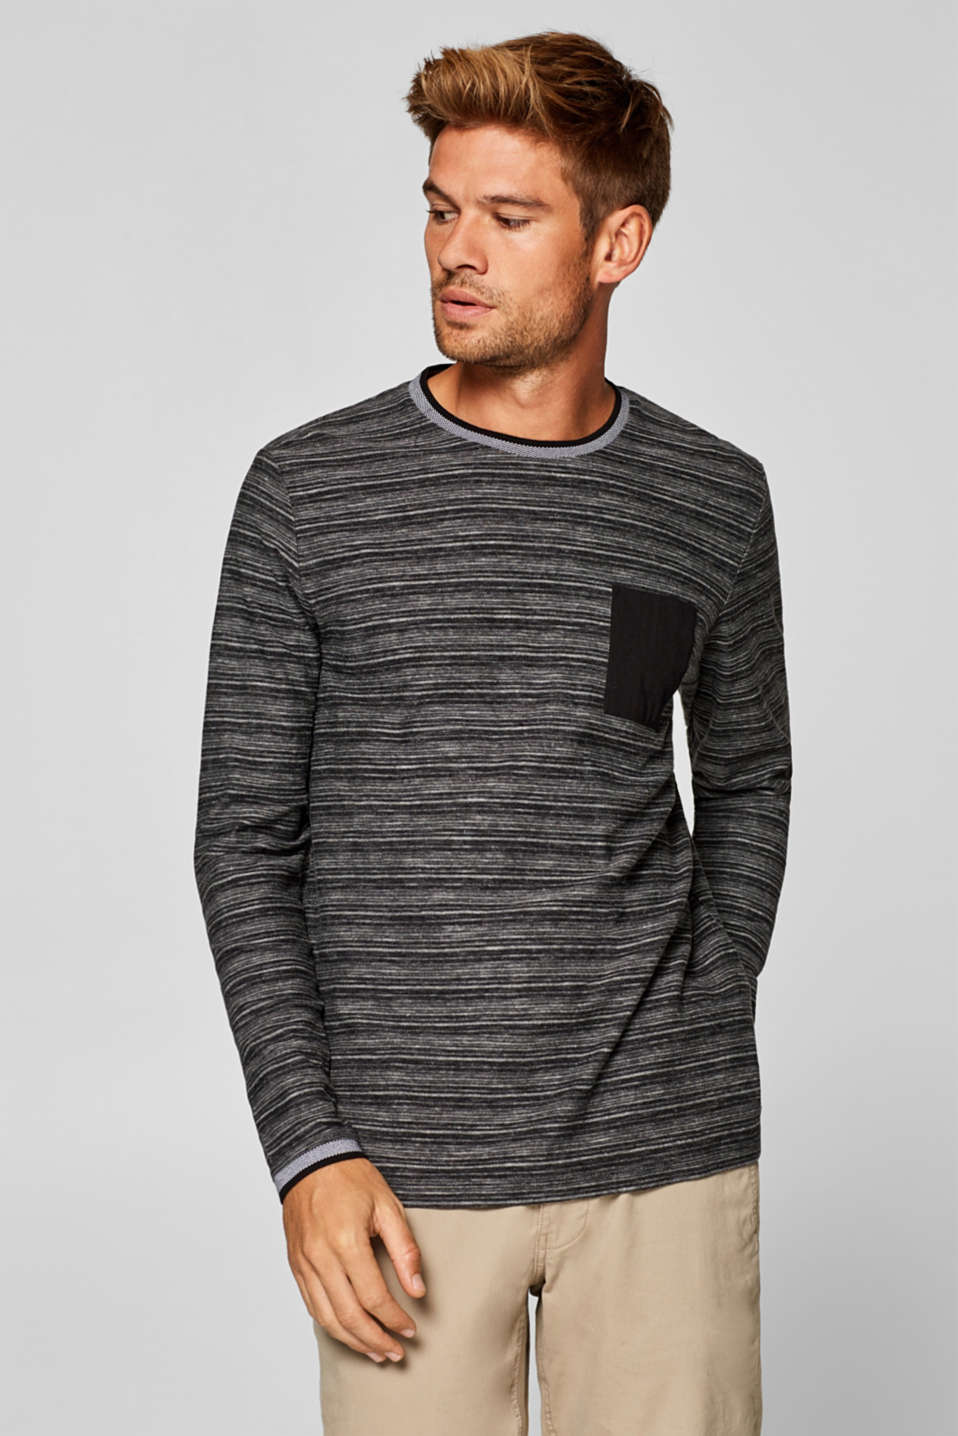 Esprit - Long sleeve jersey T-shirt with woven stripes